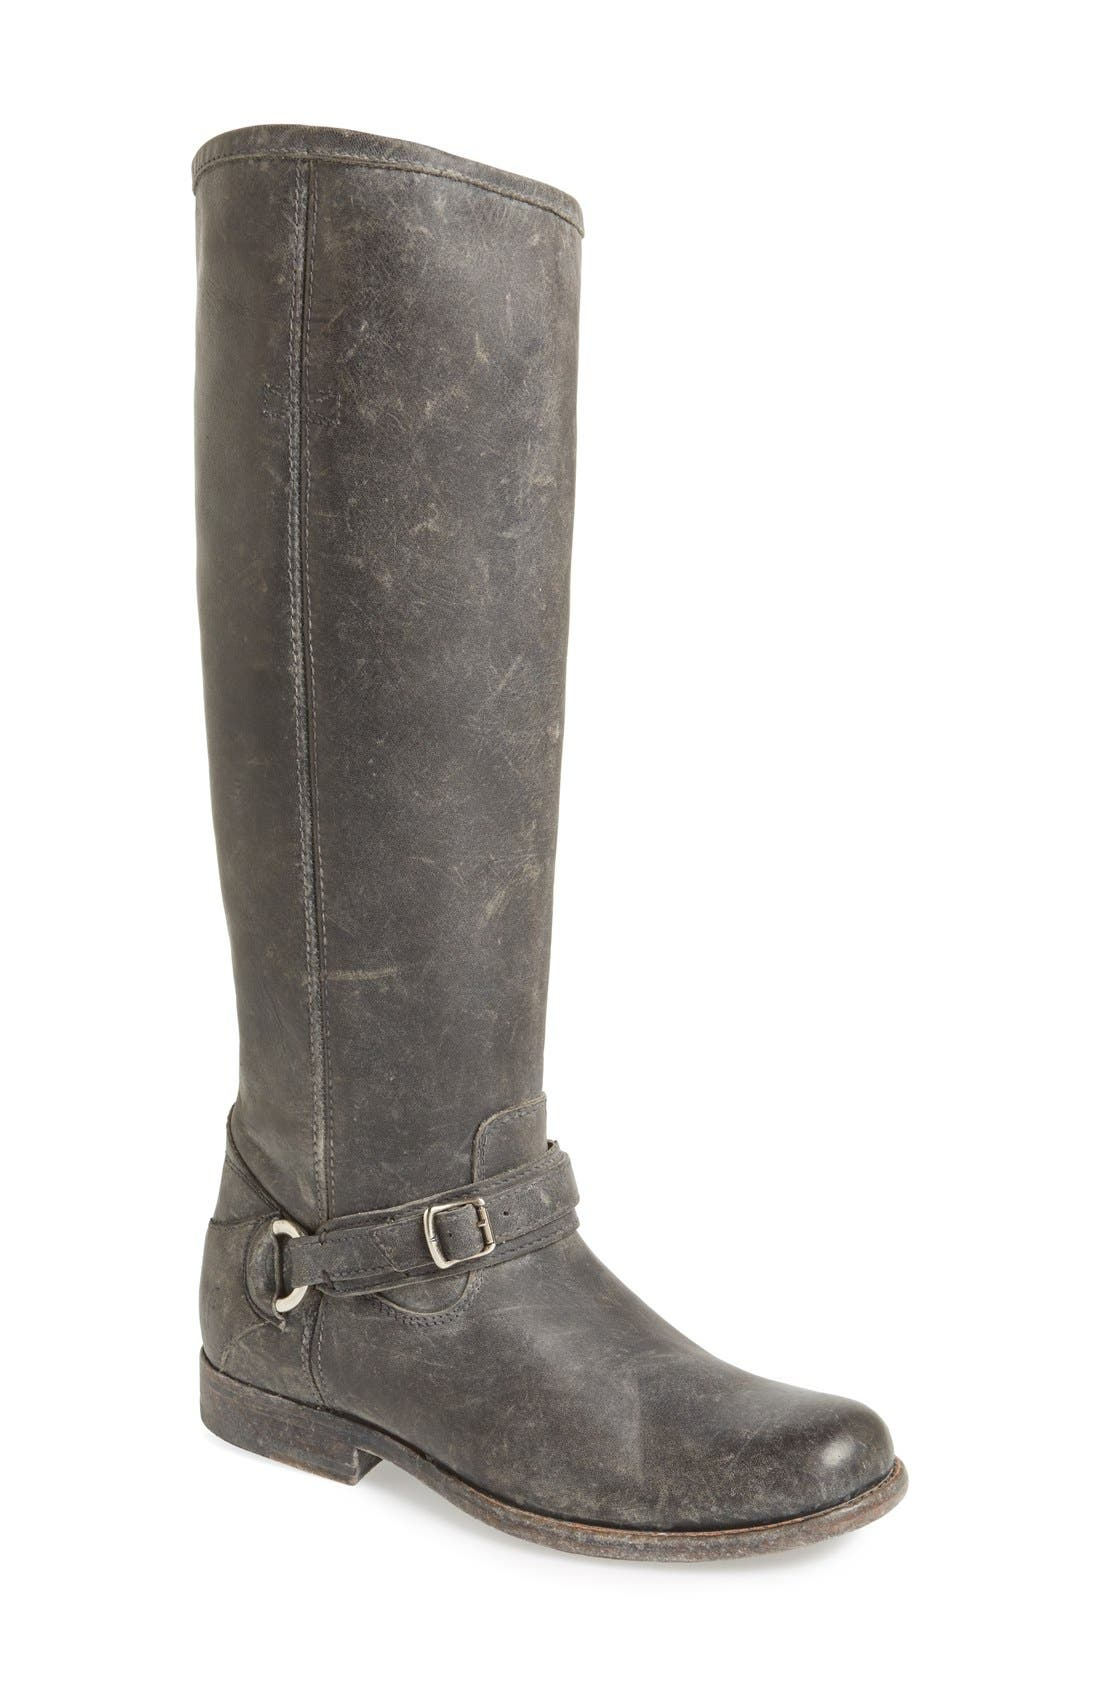 Alternate Image 1 Selected - Frye 'Phillip' Tall Boot (Women)